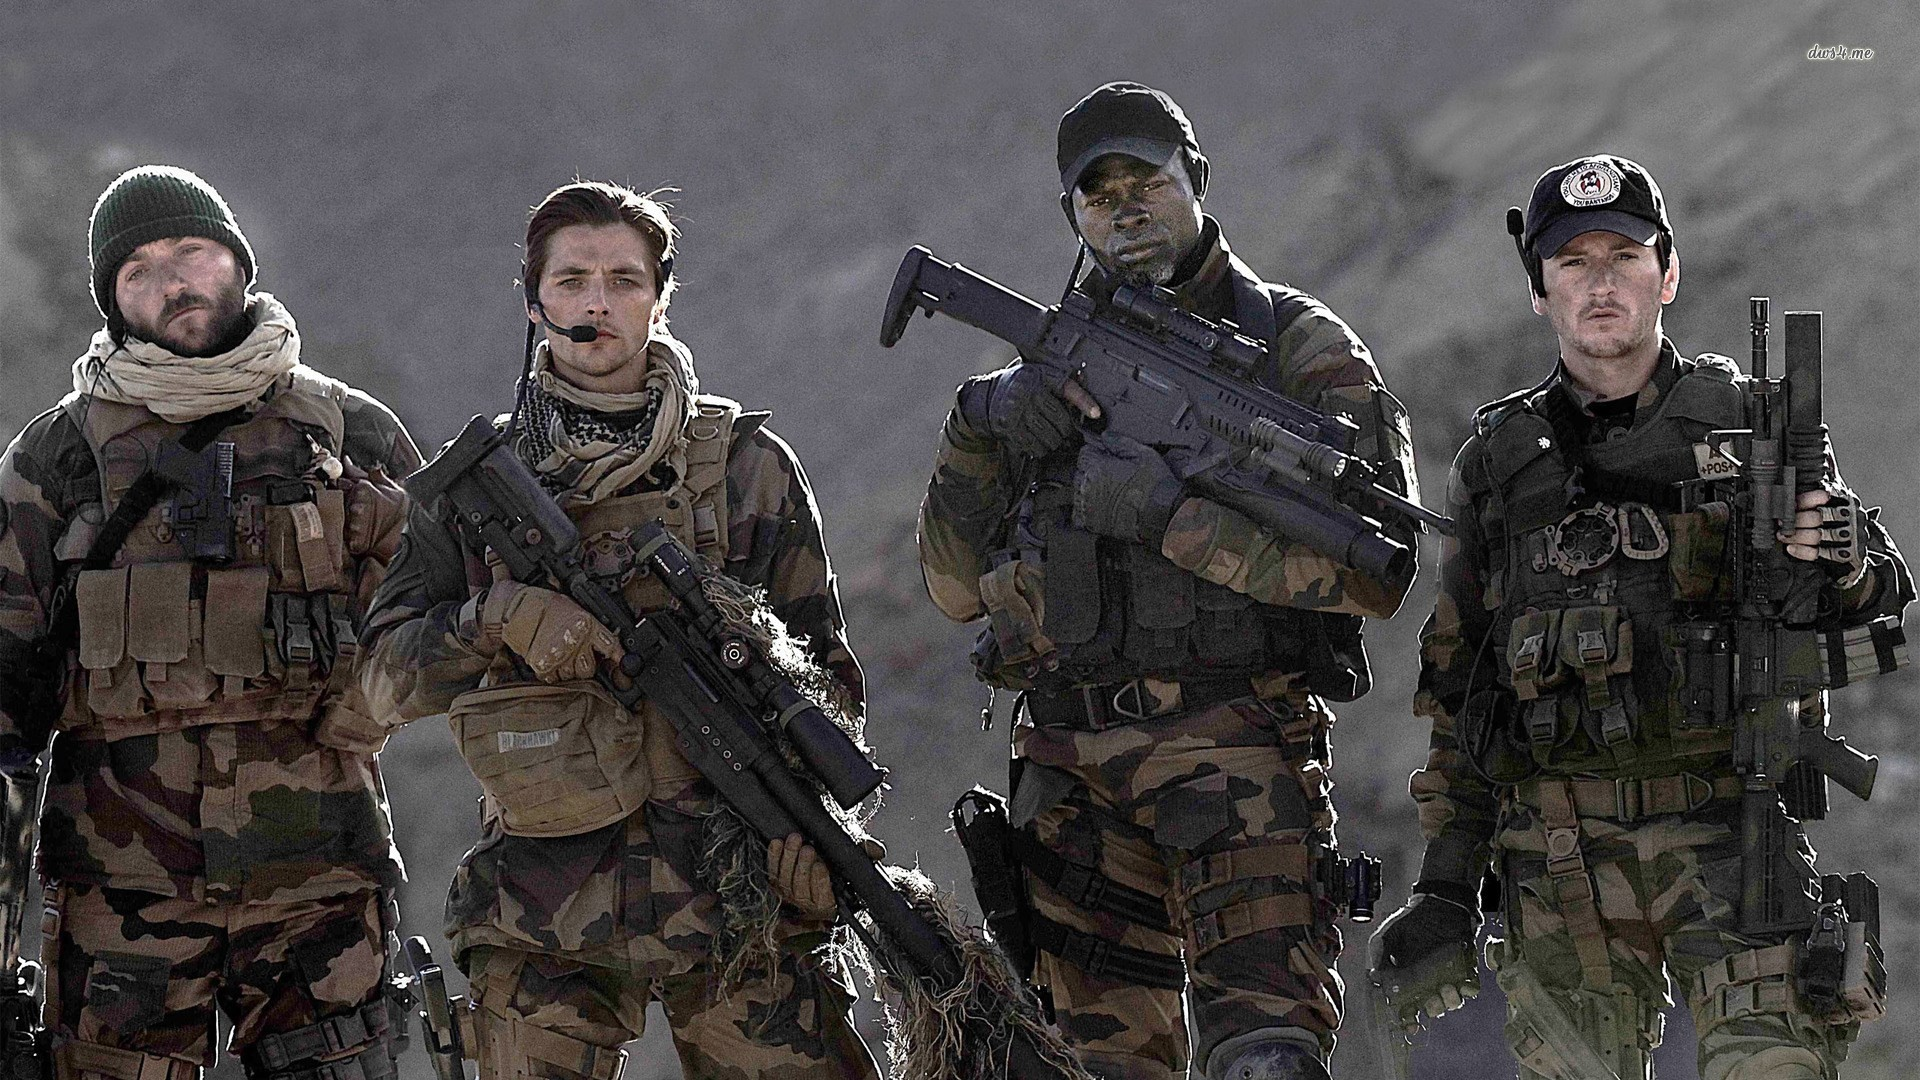 Us Army Special Forces Wallpaper (70+ images)